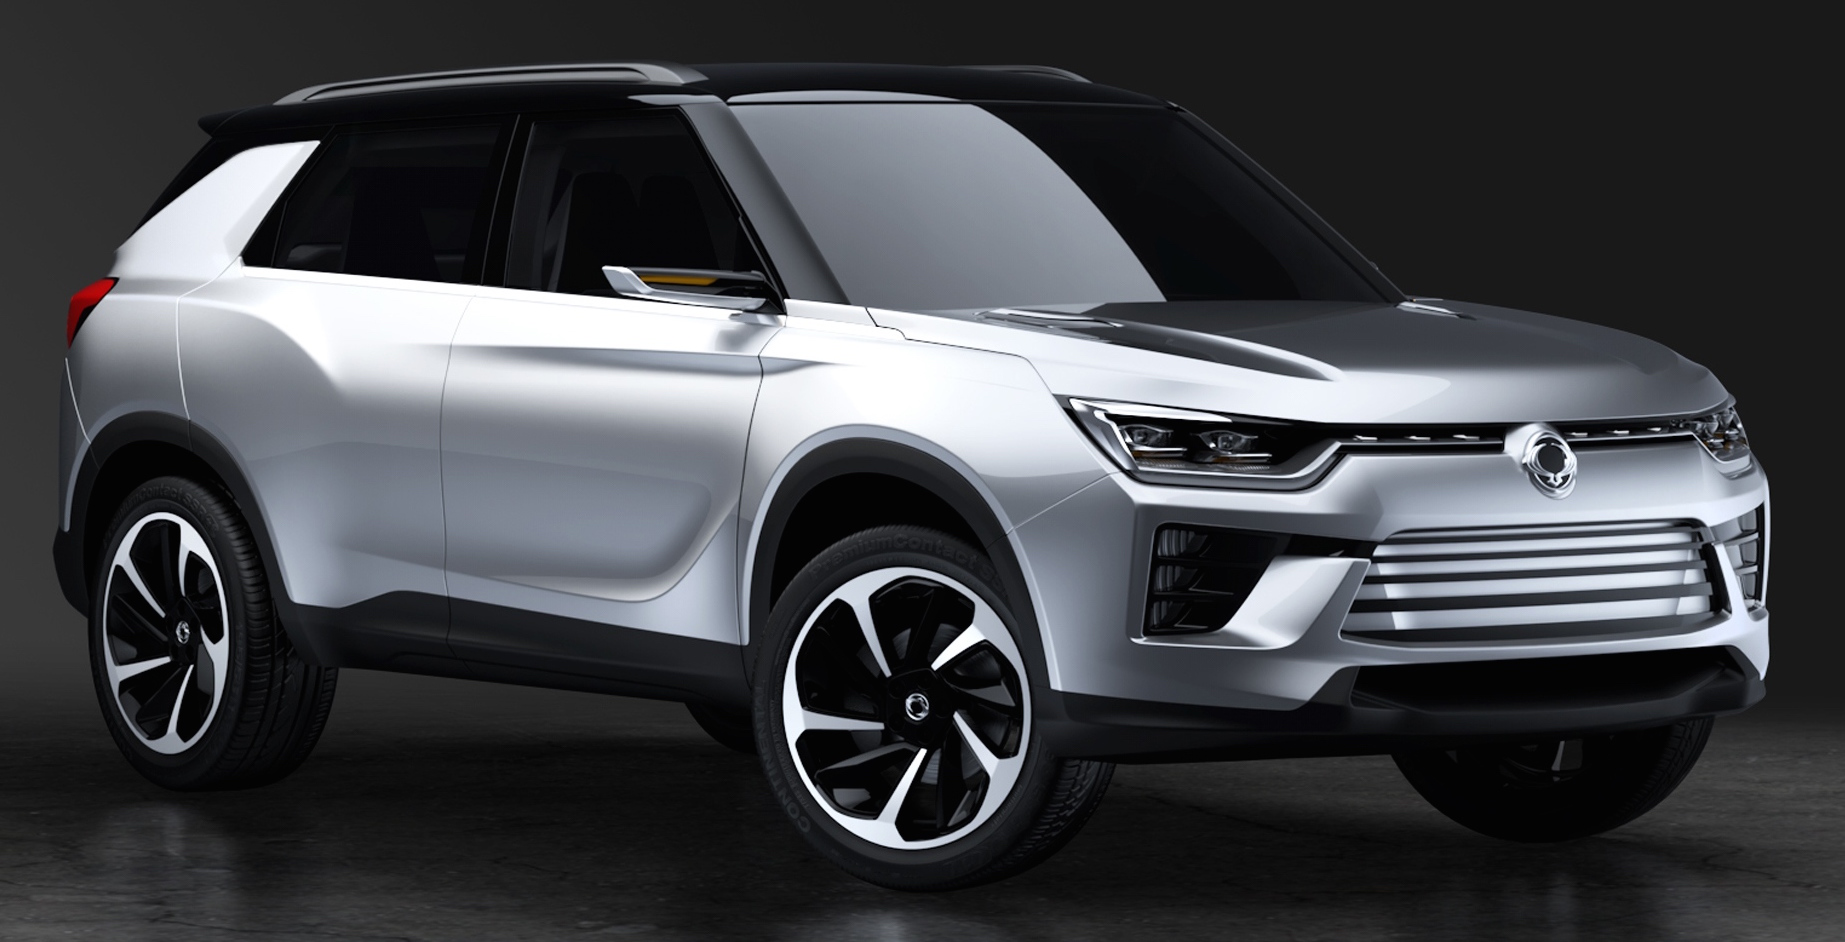 SsangYong SIV-2 Concept previews new midsize SUV